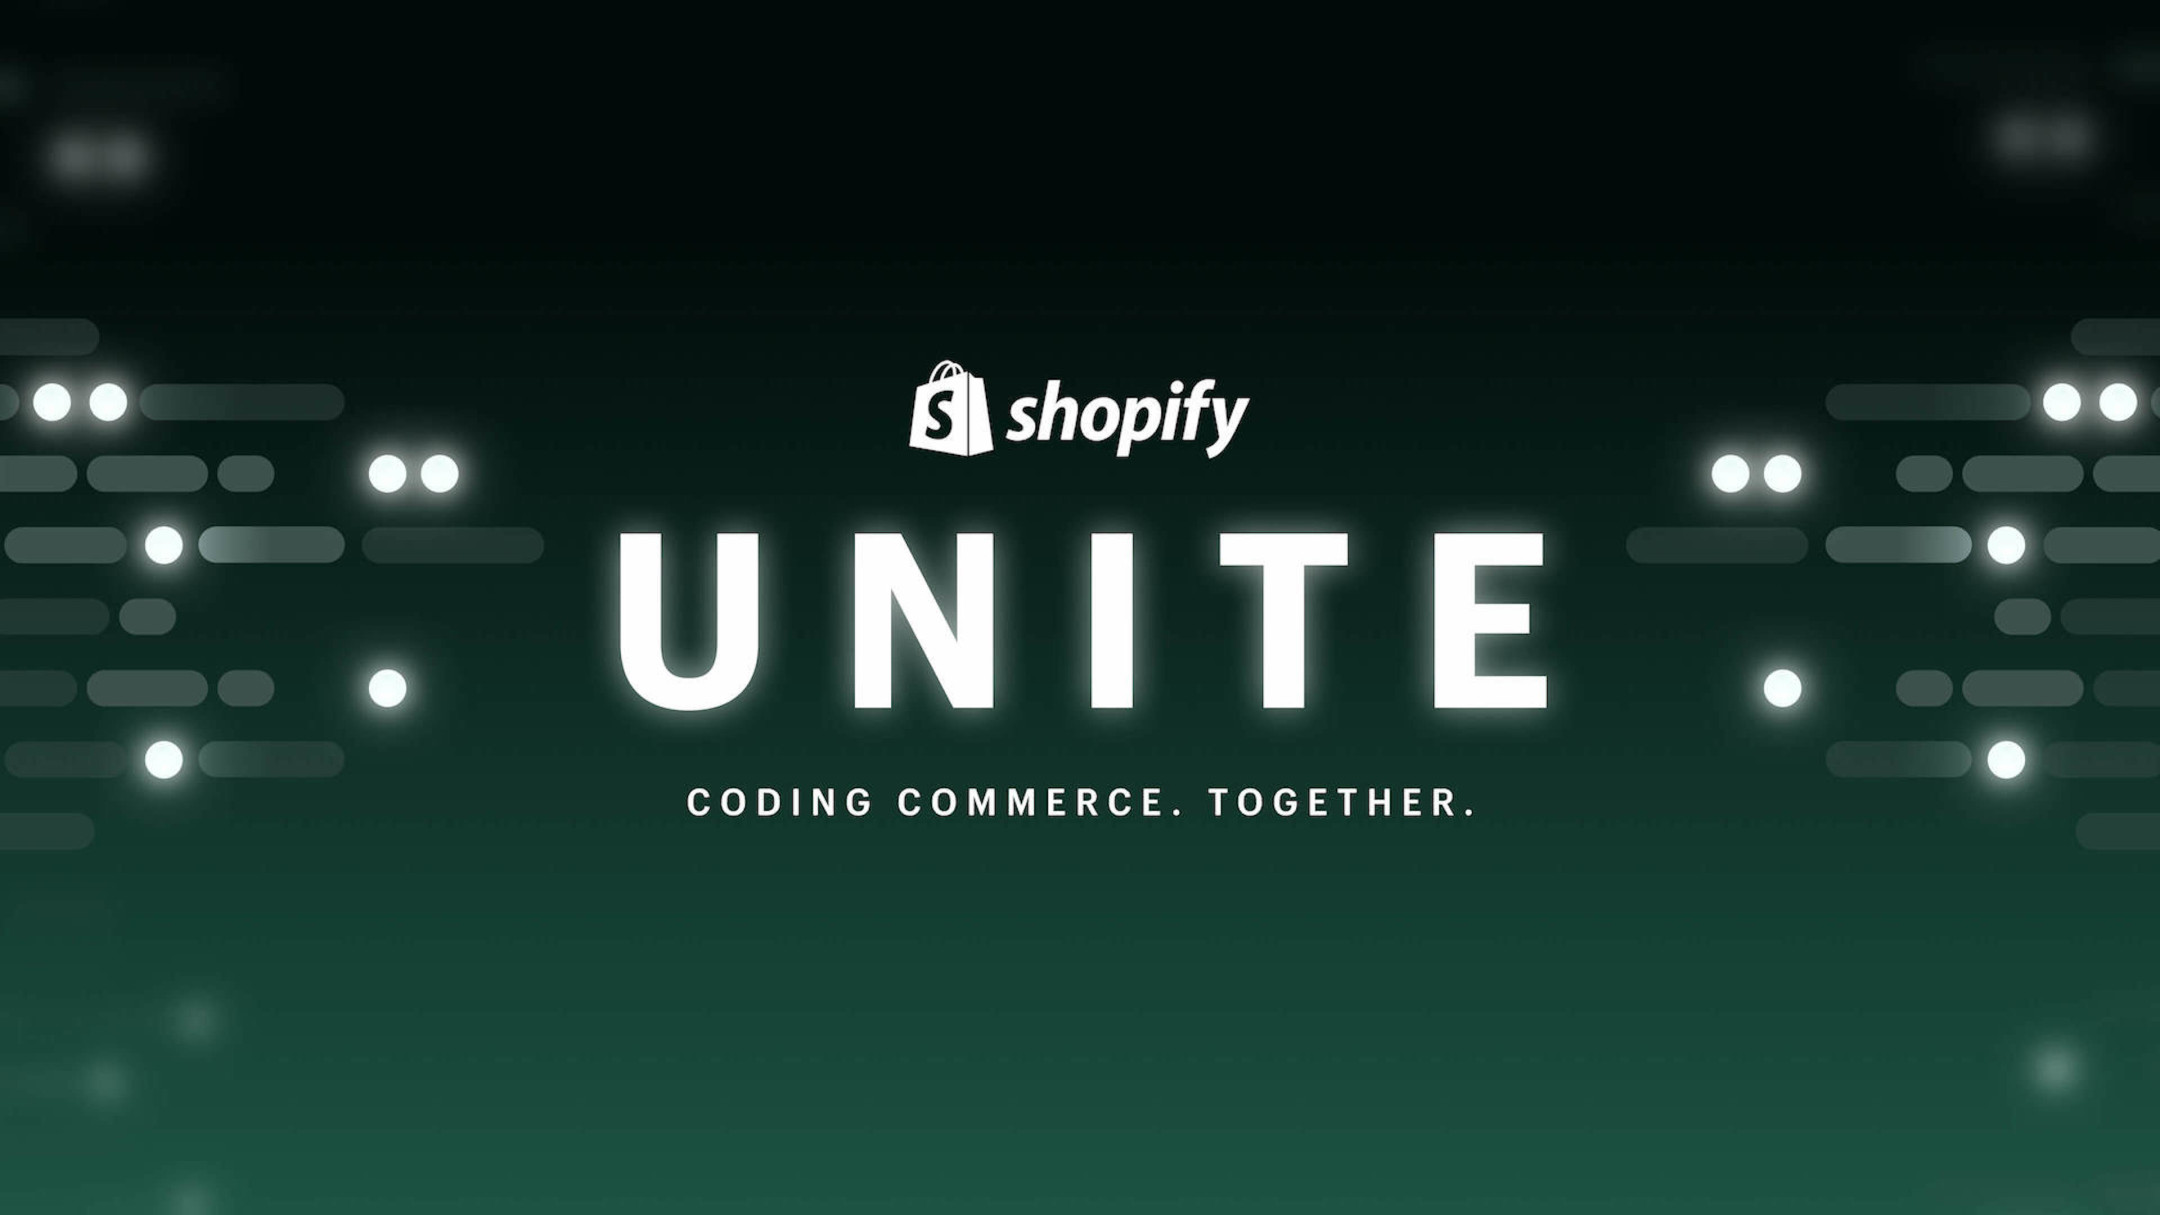 Shopify Unite 2021: Coding Commerce Together